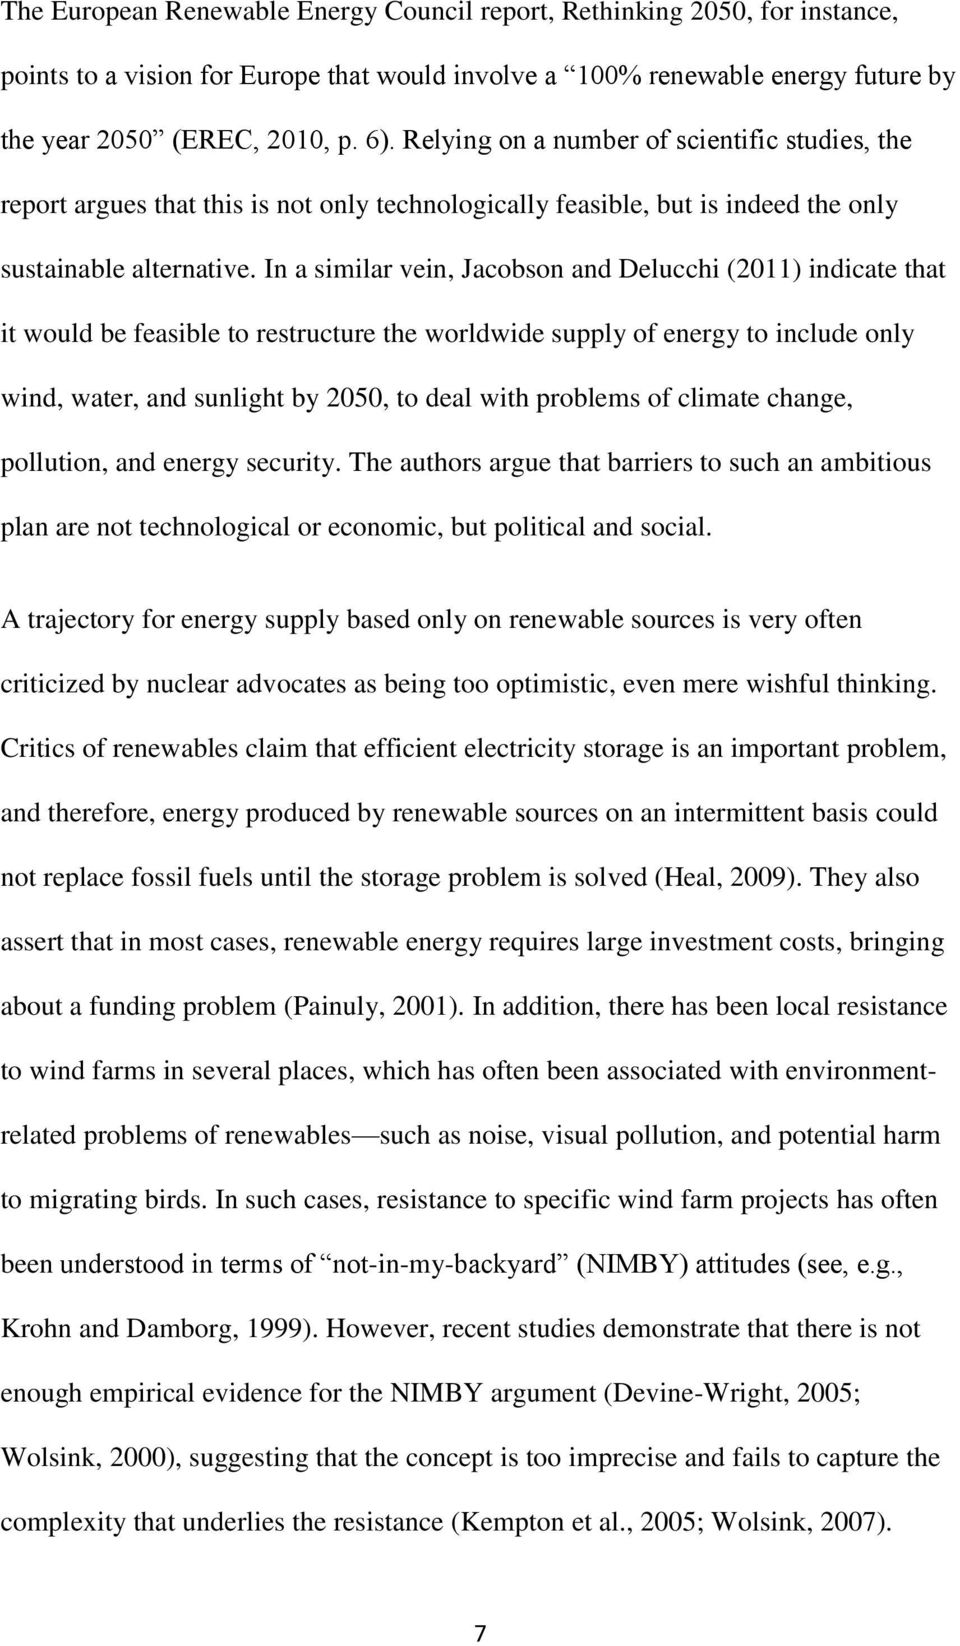 In a similar vein, Jacobson and Delucchi (2011) indicate that it would be feasible to restructure the worldwide supply of energy to include only wind, water, and sunlight by 2050, to deal with